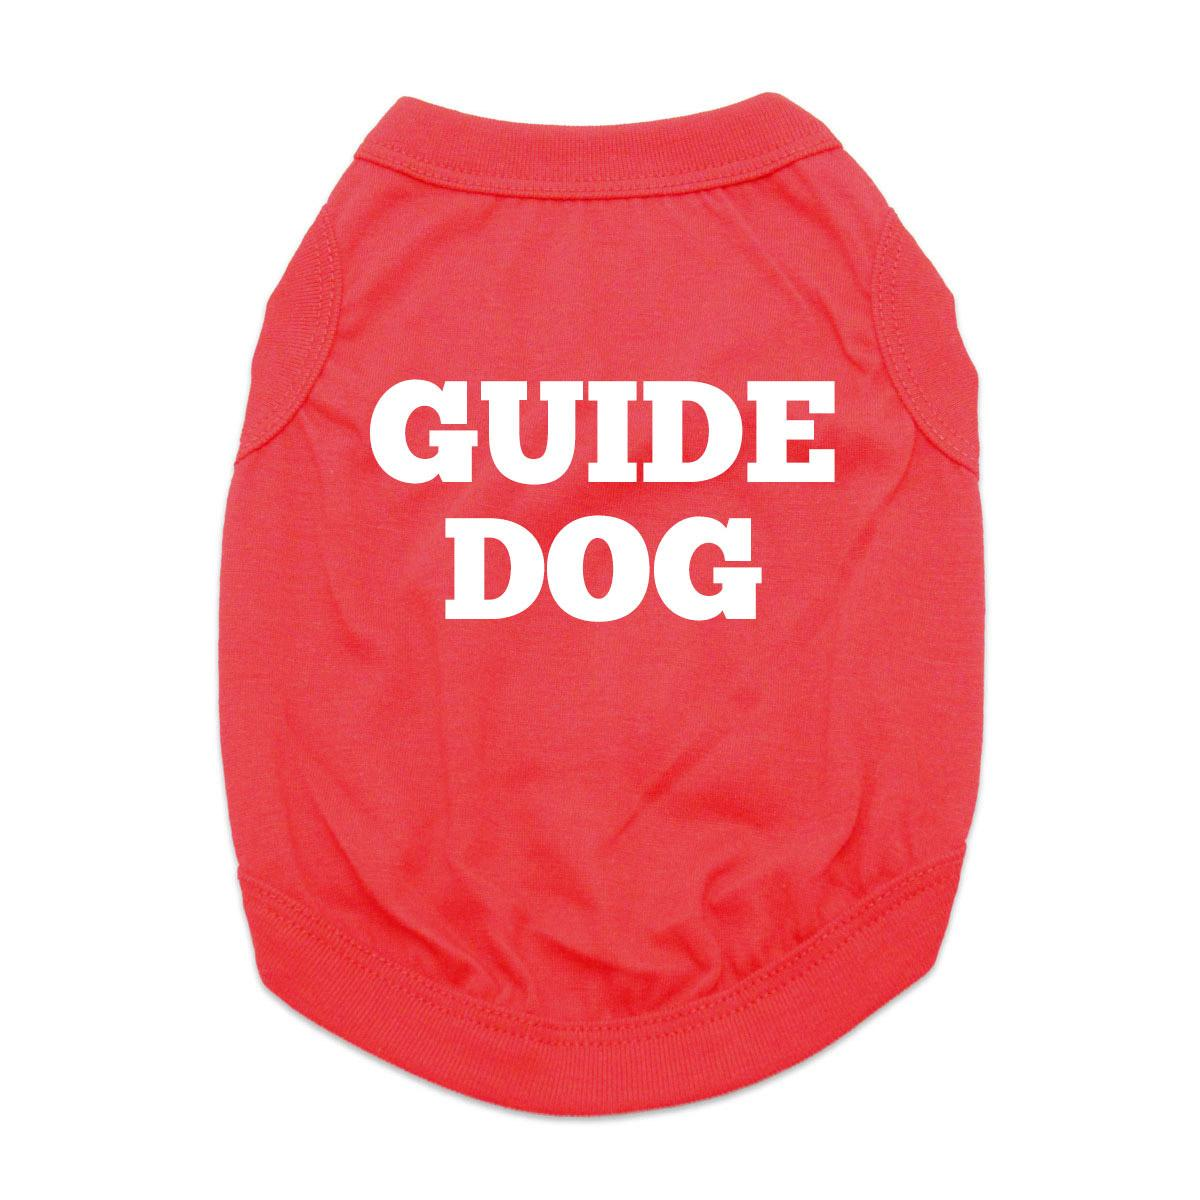 Guide Dog Shirt - Red